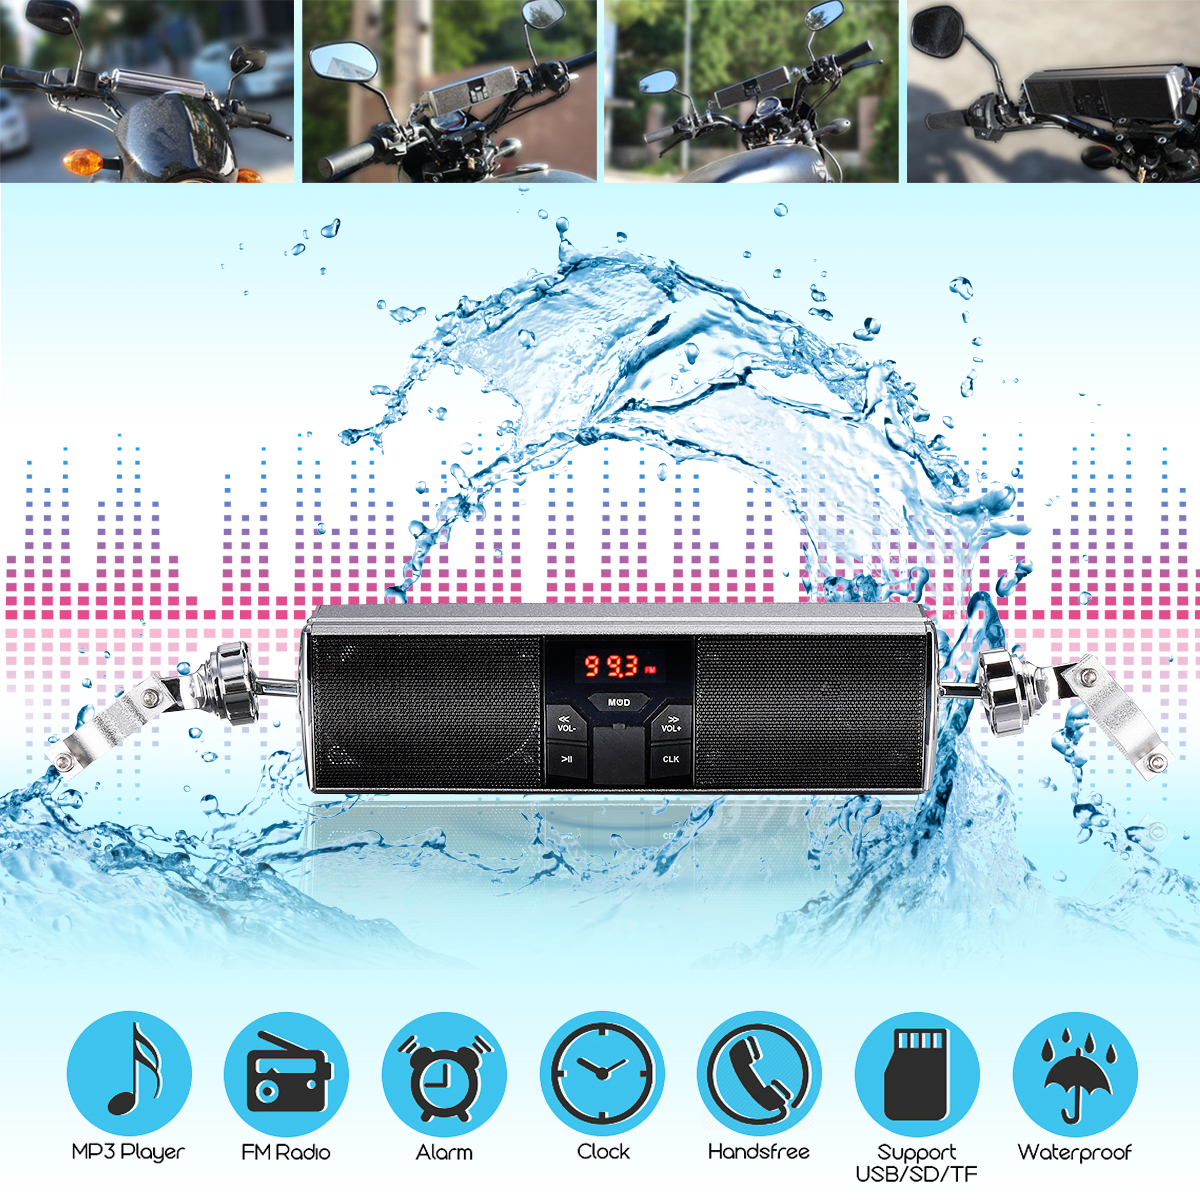 Universal Bluetooth Motorcycle MP3 Music LED Player Speakers Motorbike Bluetooth Stereo Speaker FM Radio Waterproof Audio Player mtsooning motorcycle mp3 player atv audio music system support usb 12v motorbike fm radio with speakers motorcycle music player